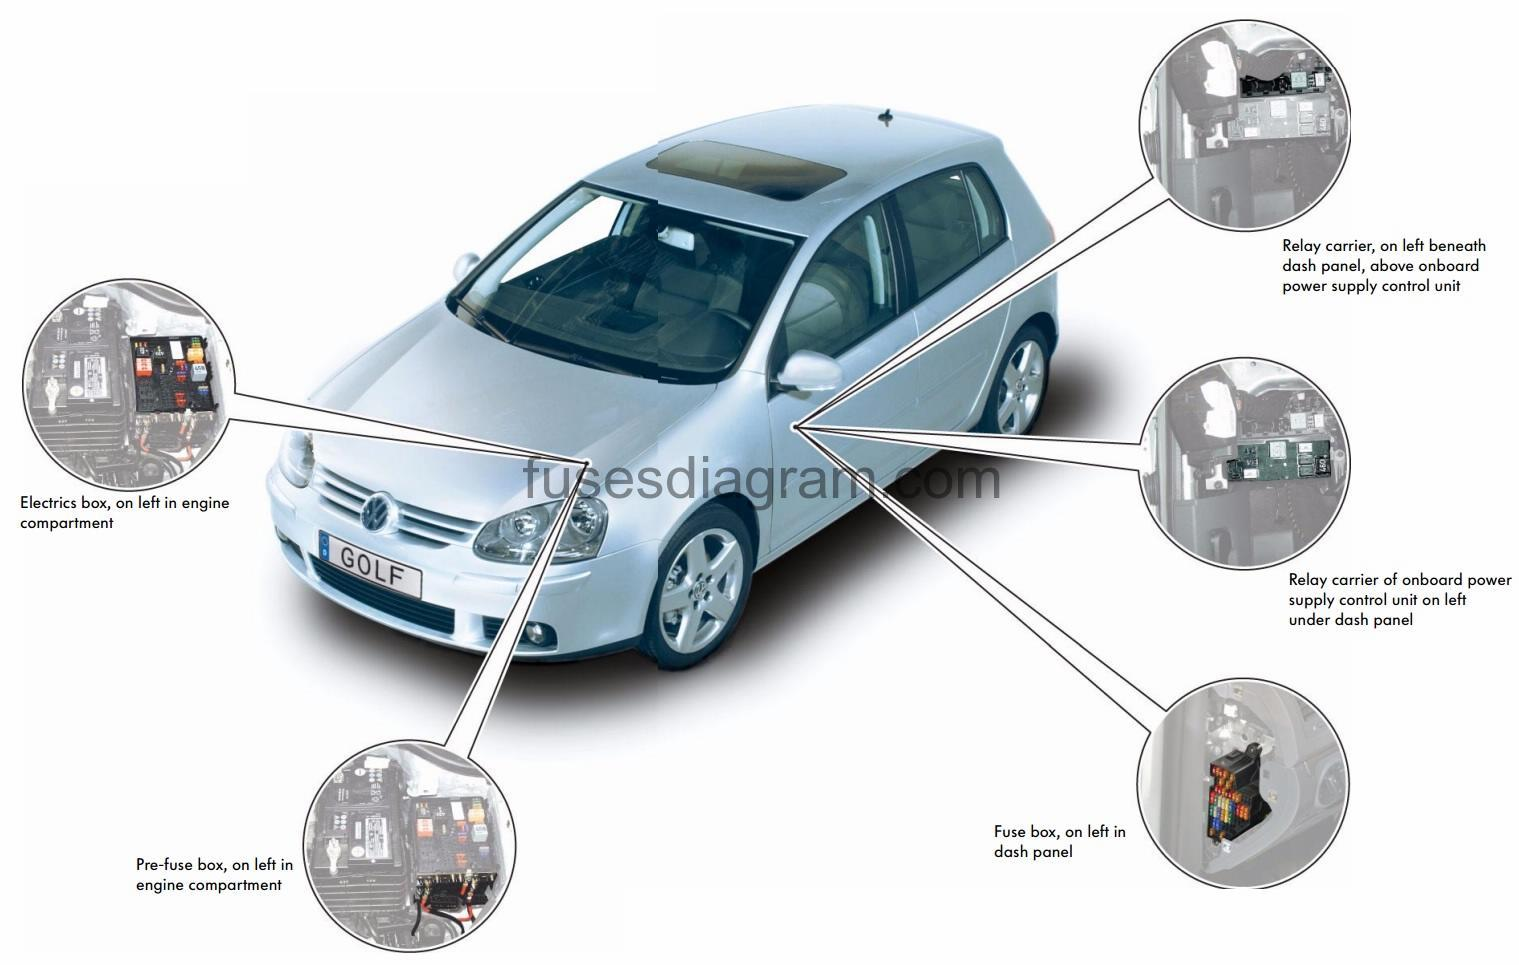 hight resolution of fuse box volkswagen golf mk5 2014 jetta fuse box layout 2014 vw jetta fuse box diagram